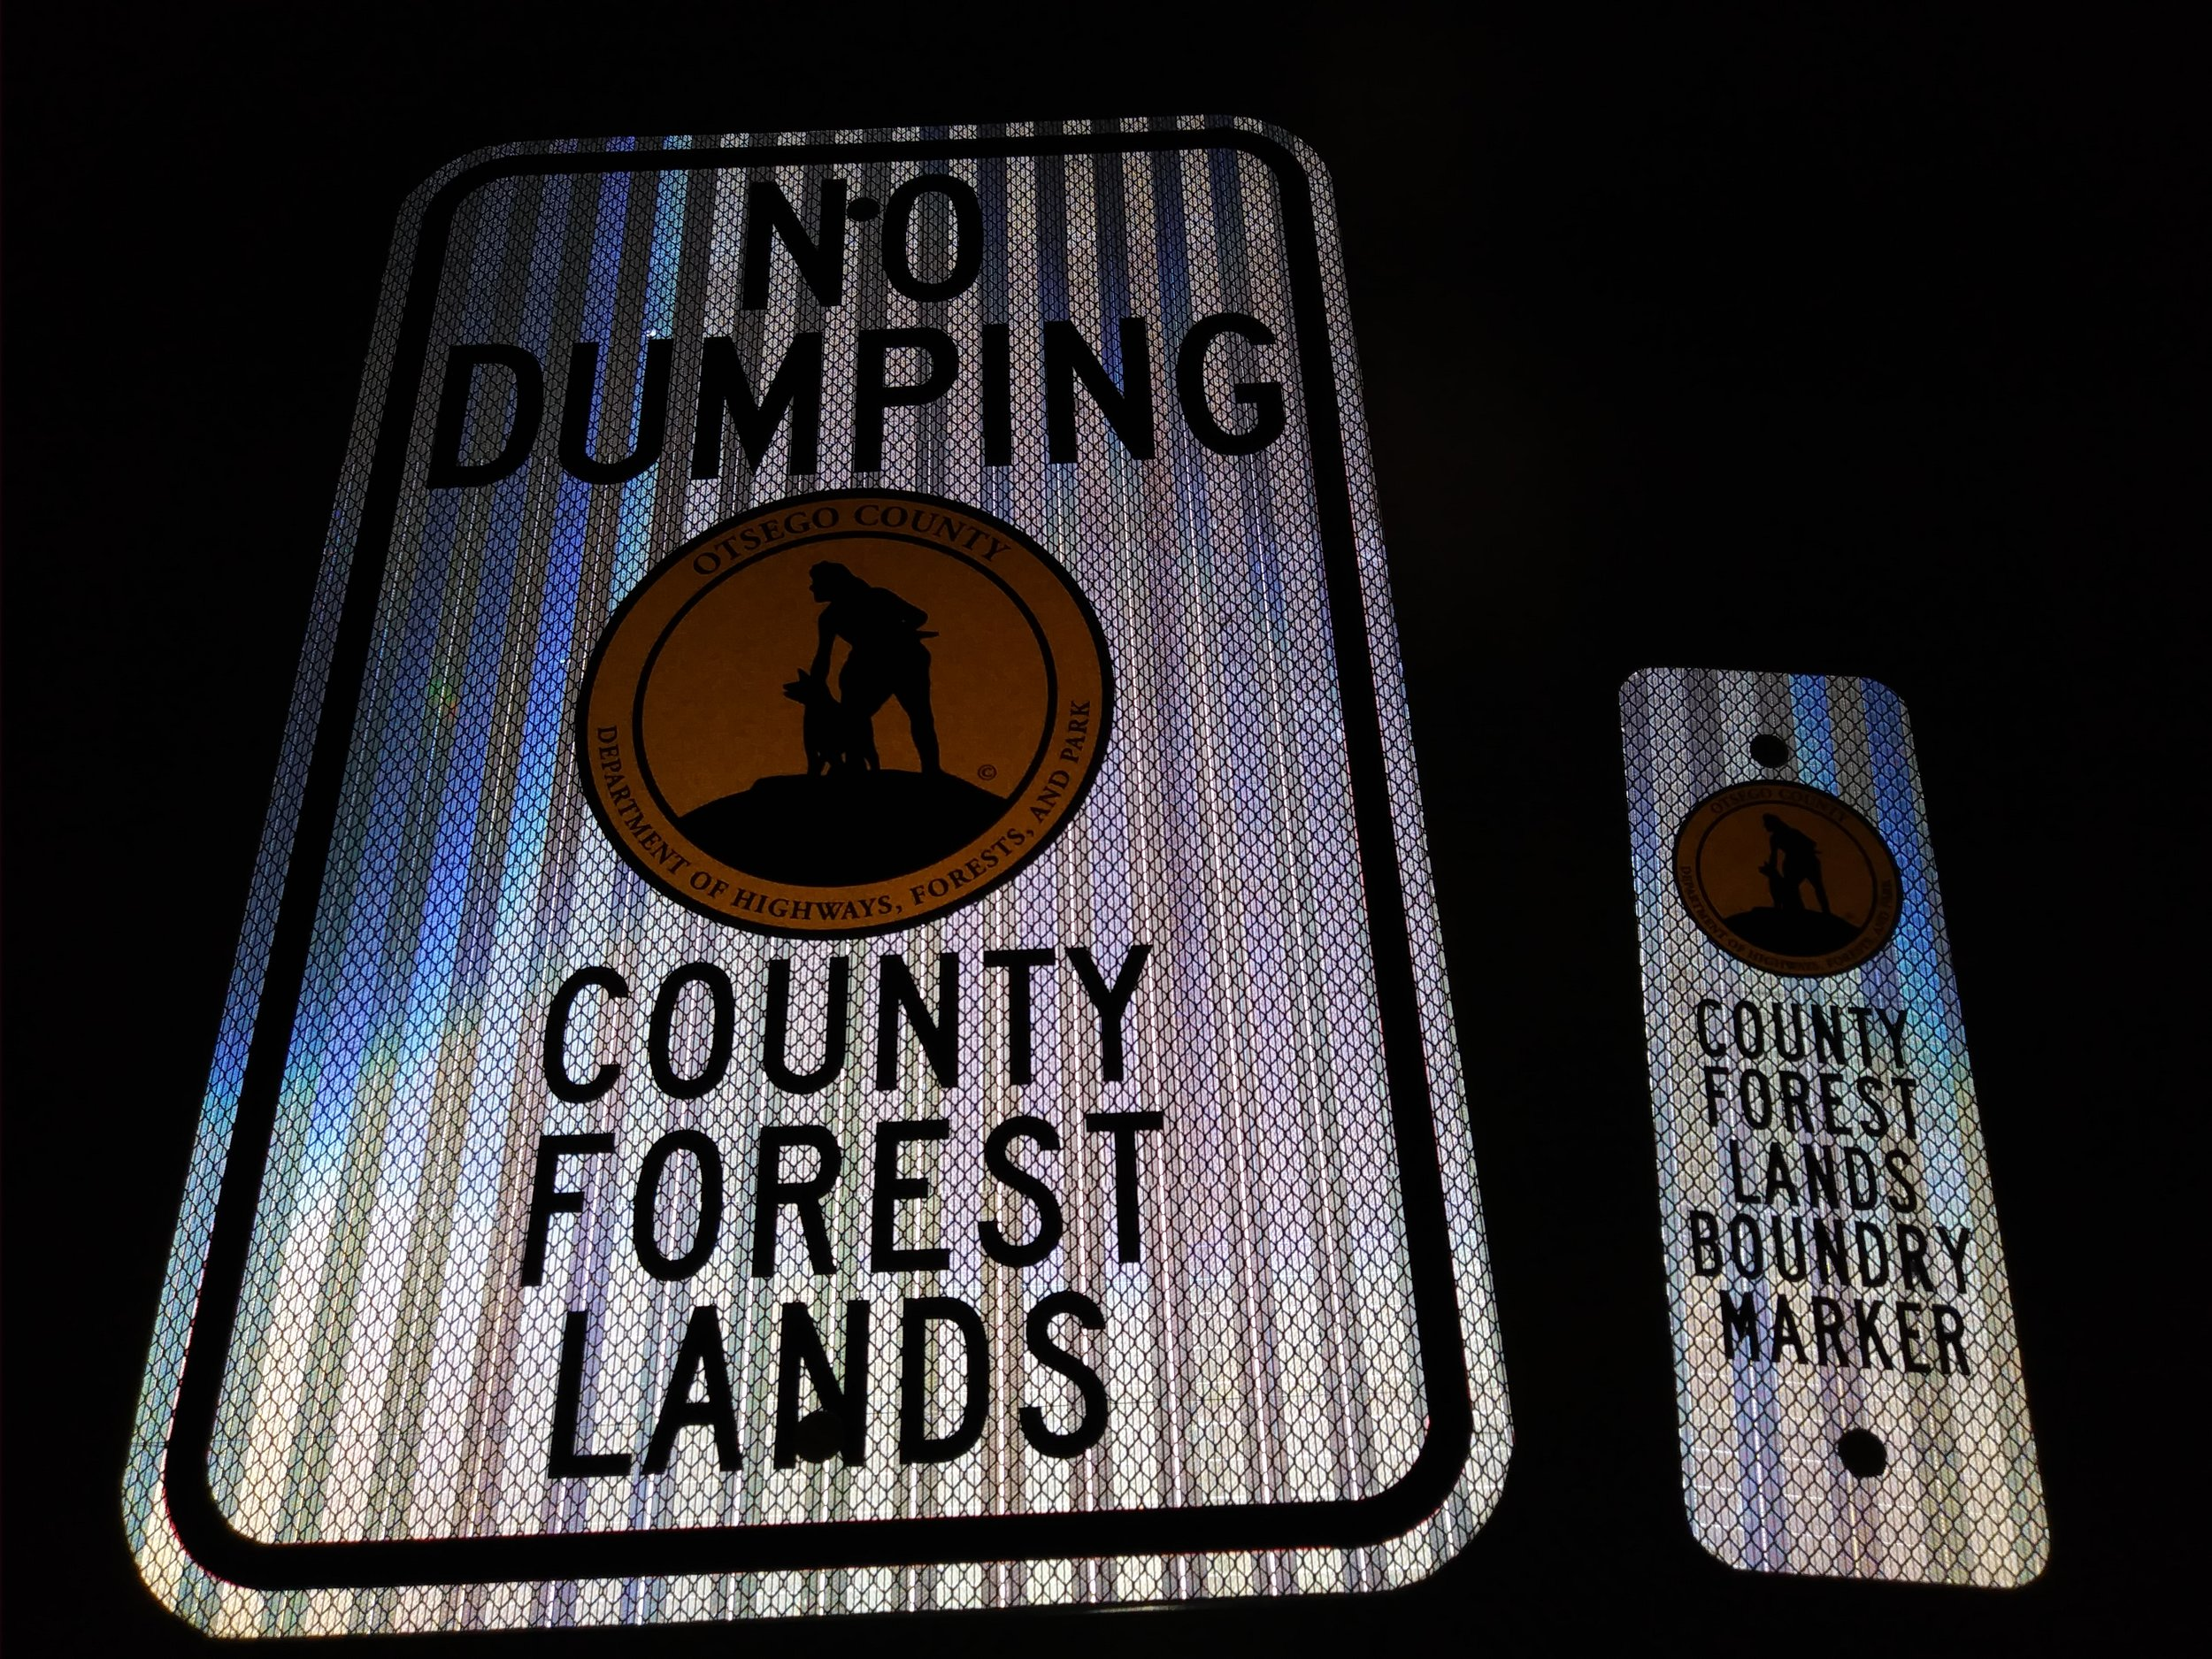 New County Forest Lands No Dumping and Boundary Marker Signs